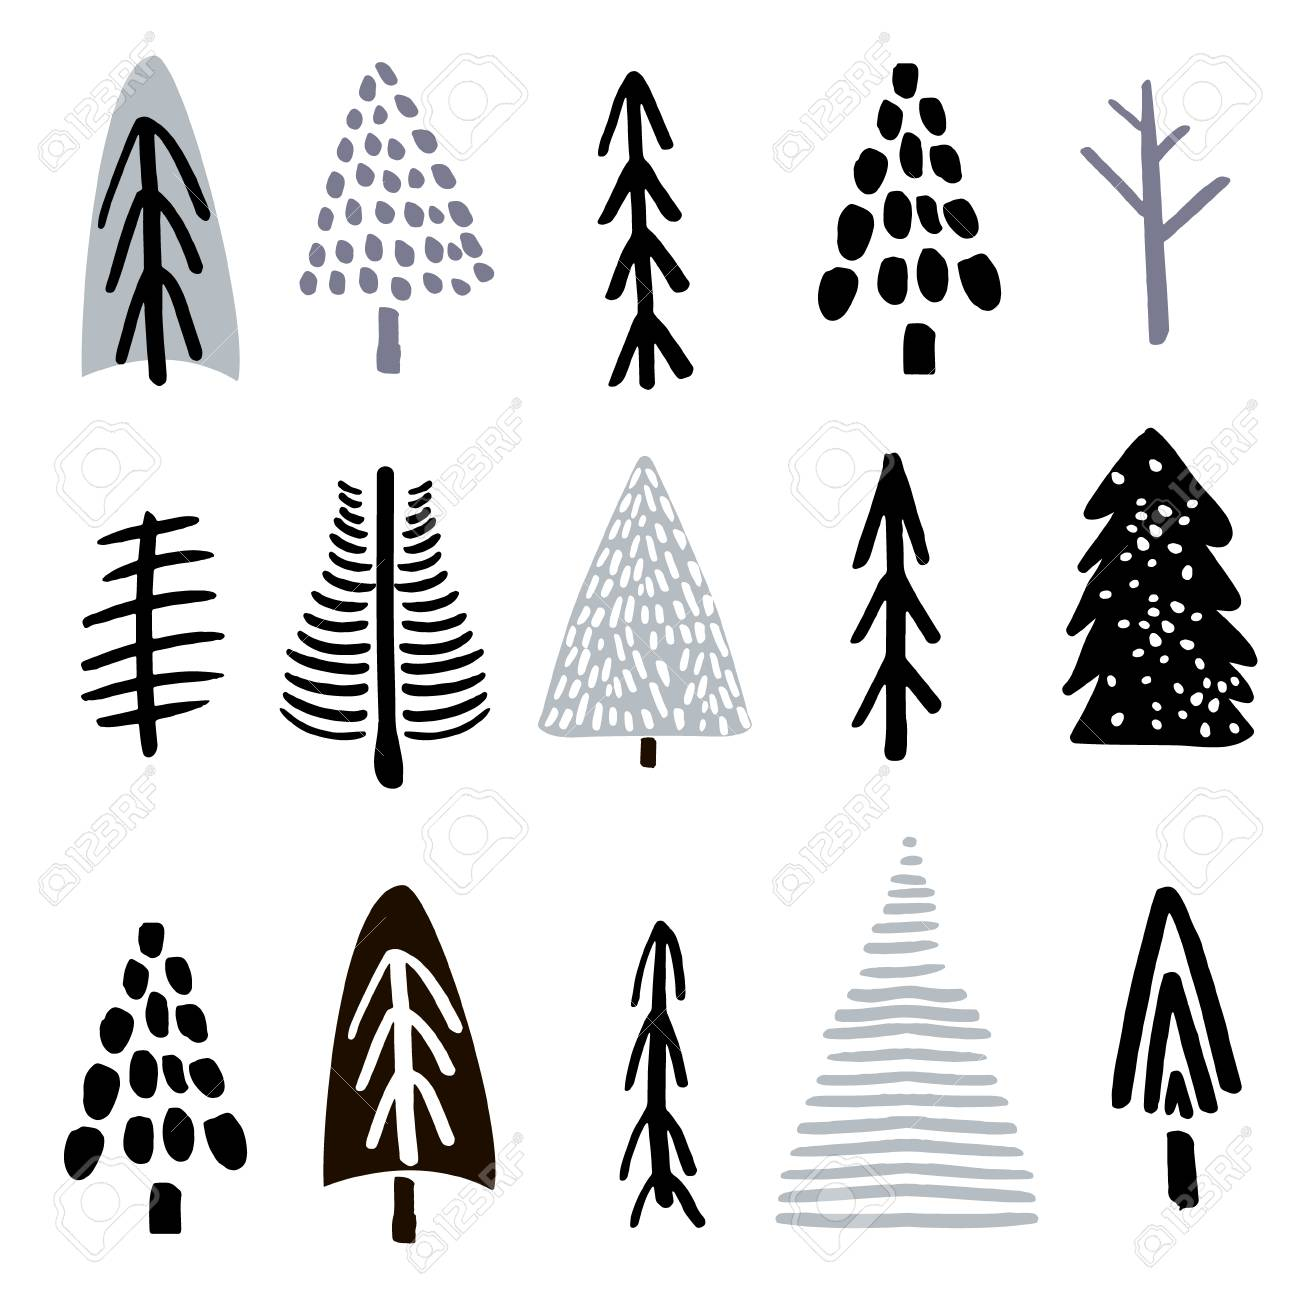 Christmas Trees Silhouette.Collection Christmas Trees Made With Ink Creative Tree Silhouette